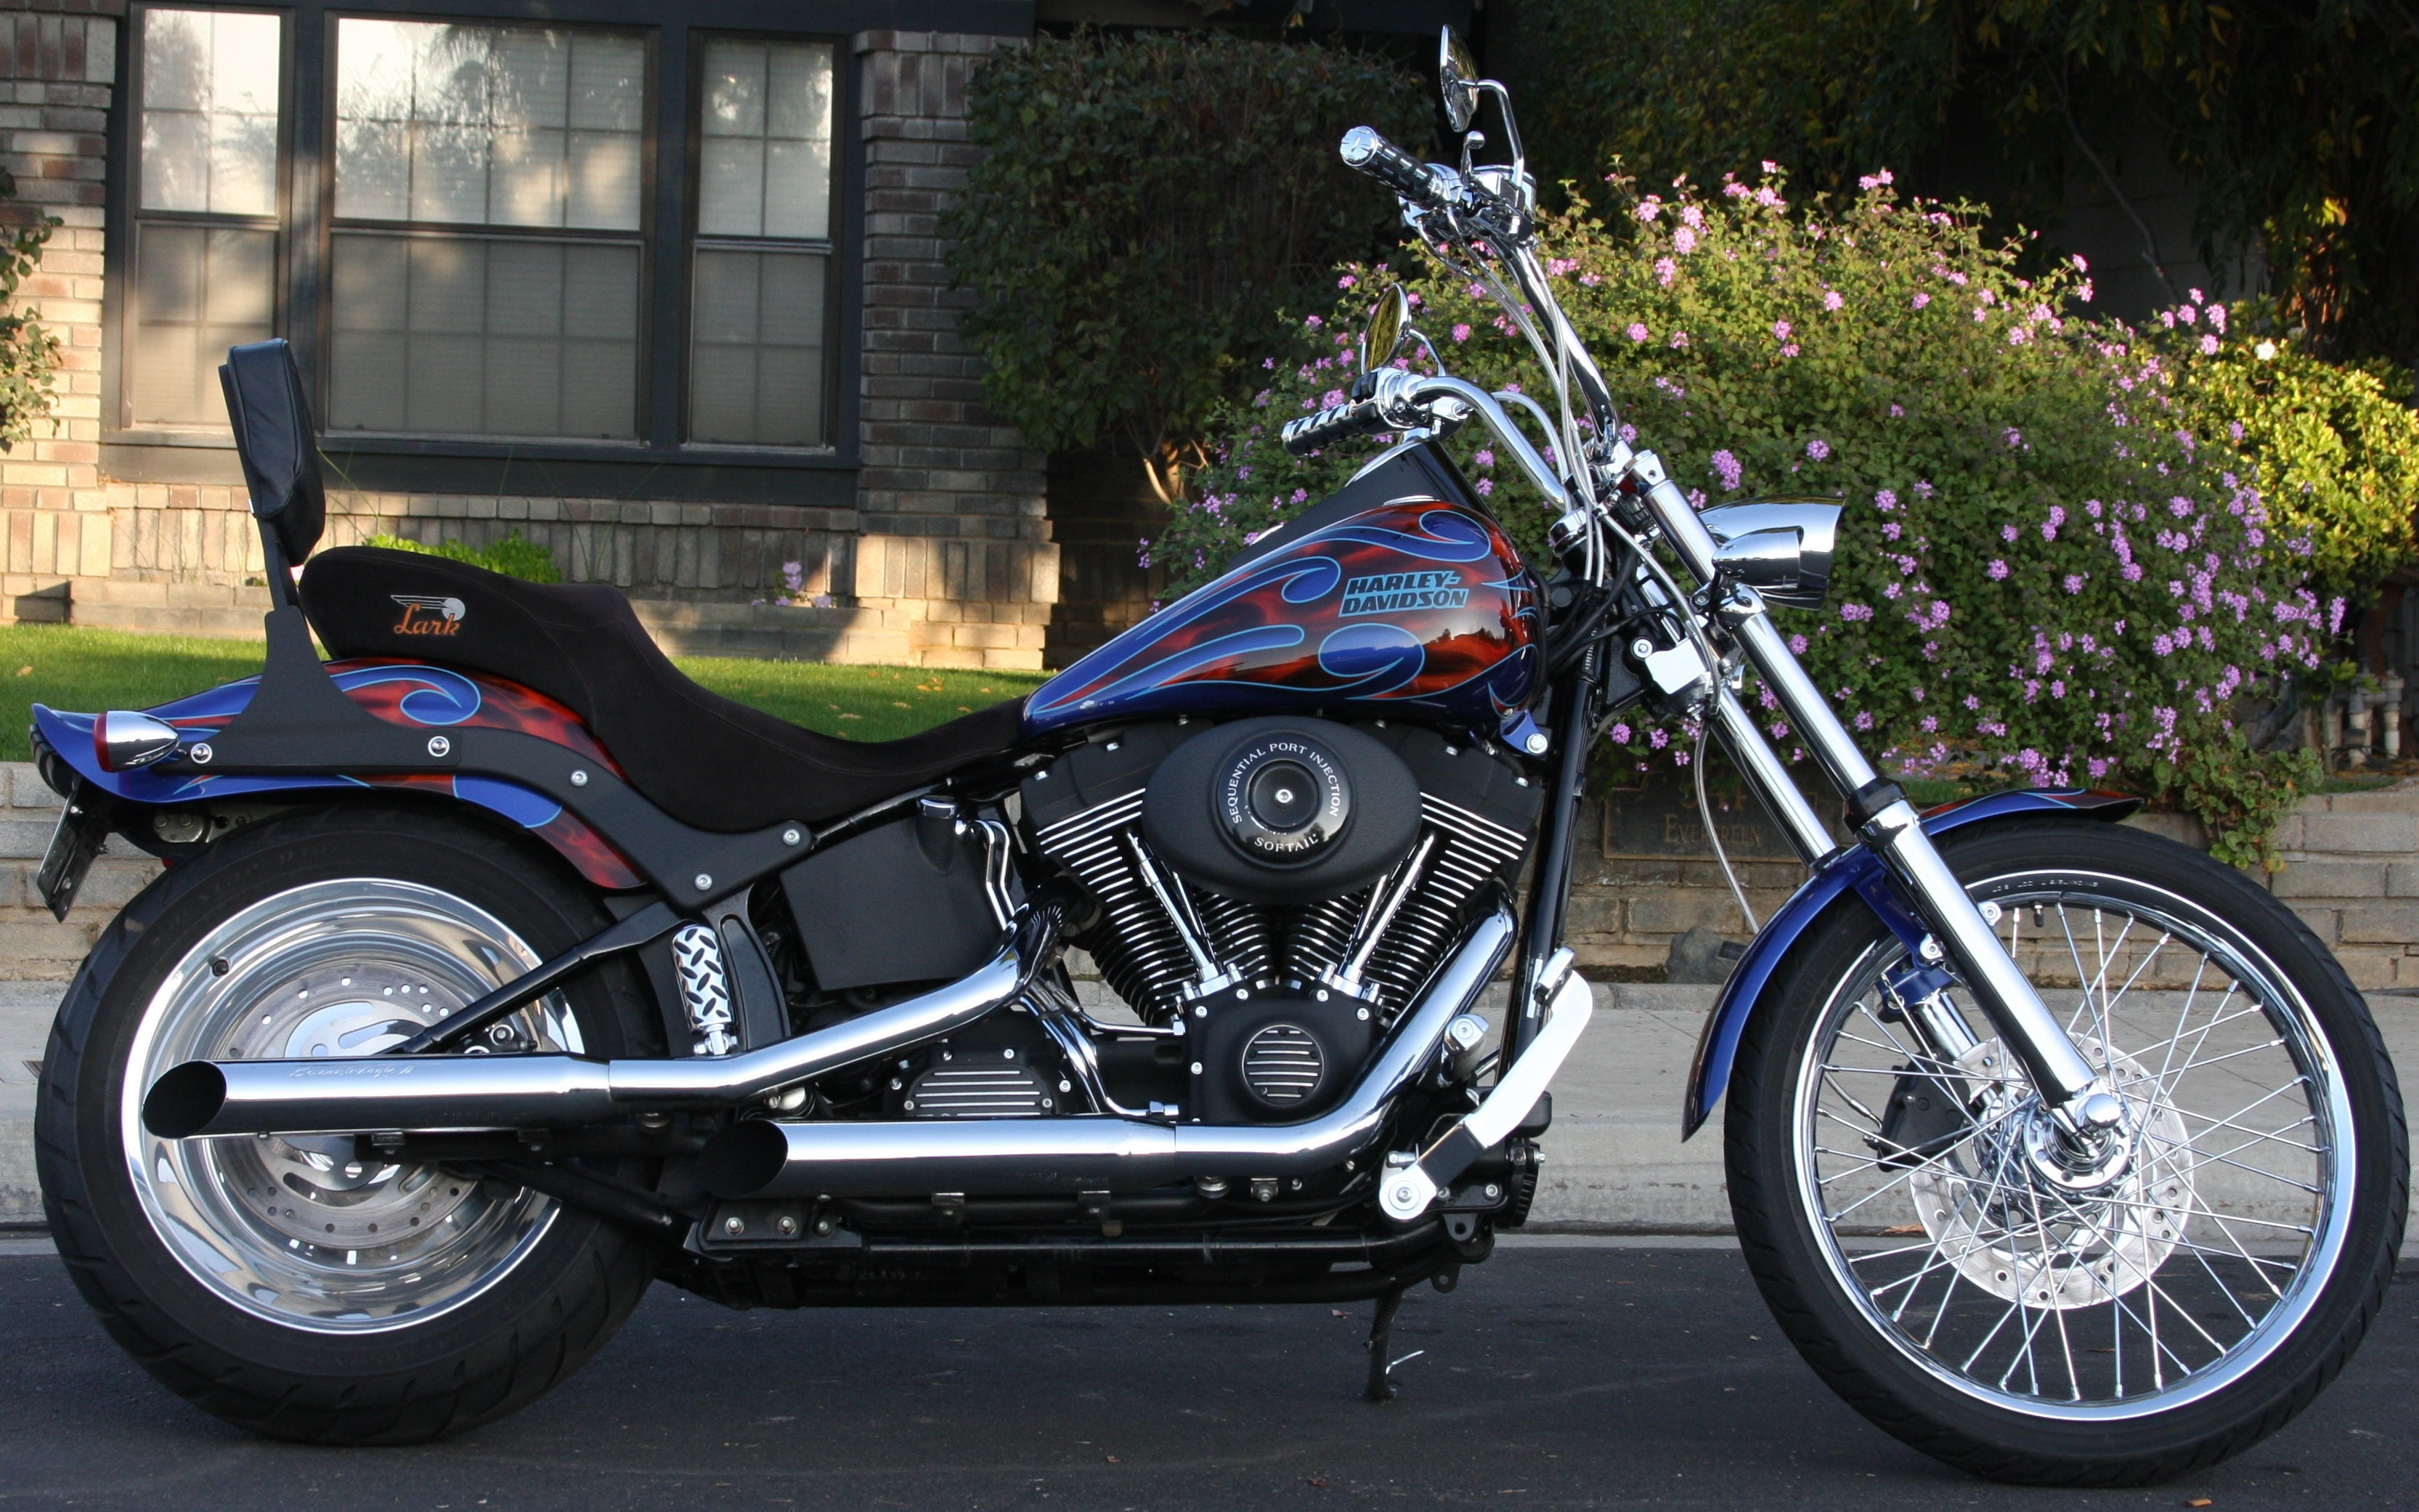 2006 Harley Davidson 174 Fxstb I Softail 174 Night Train 174 Blue